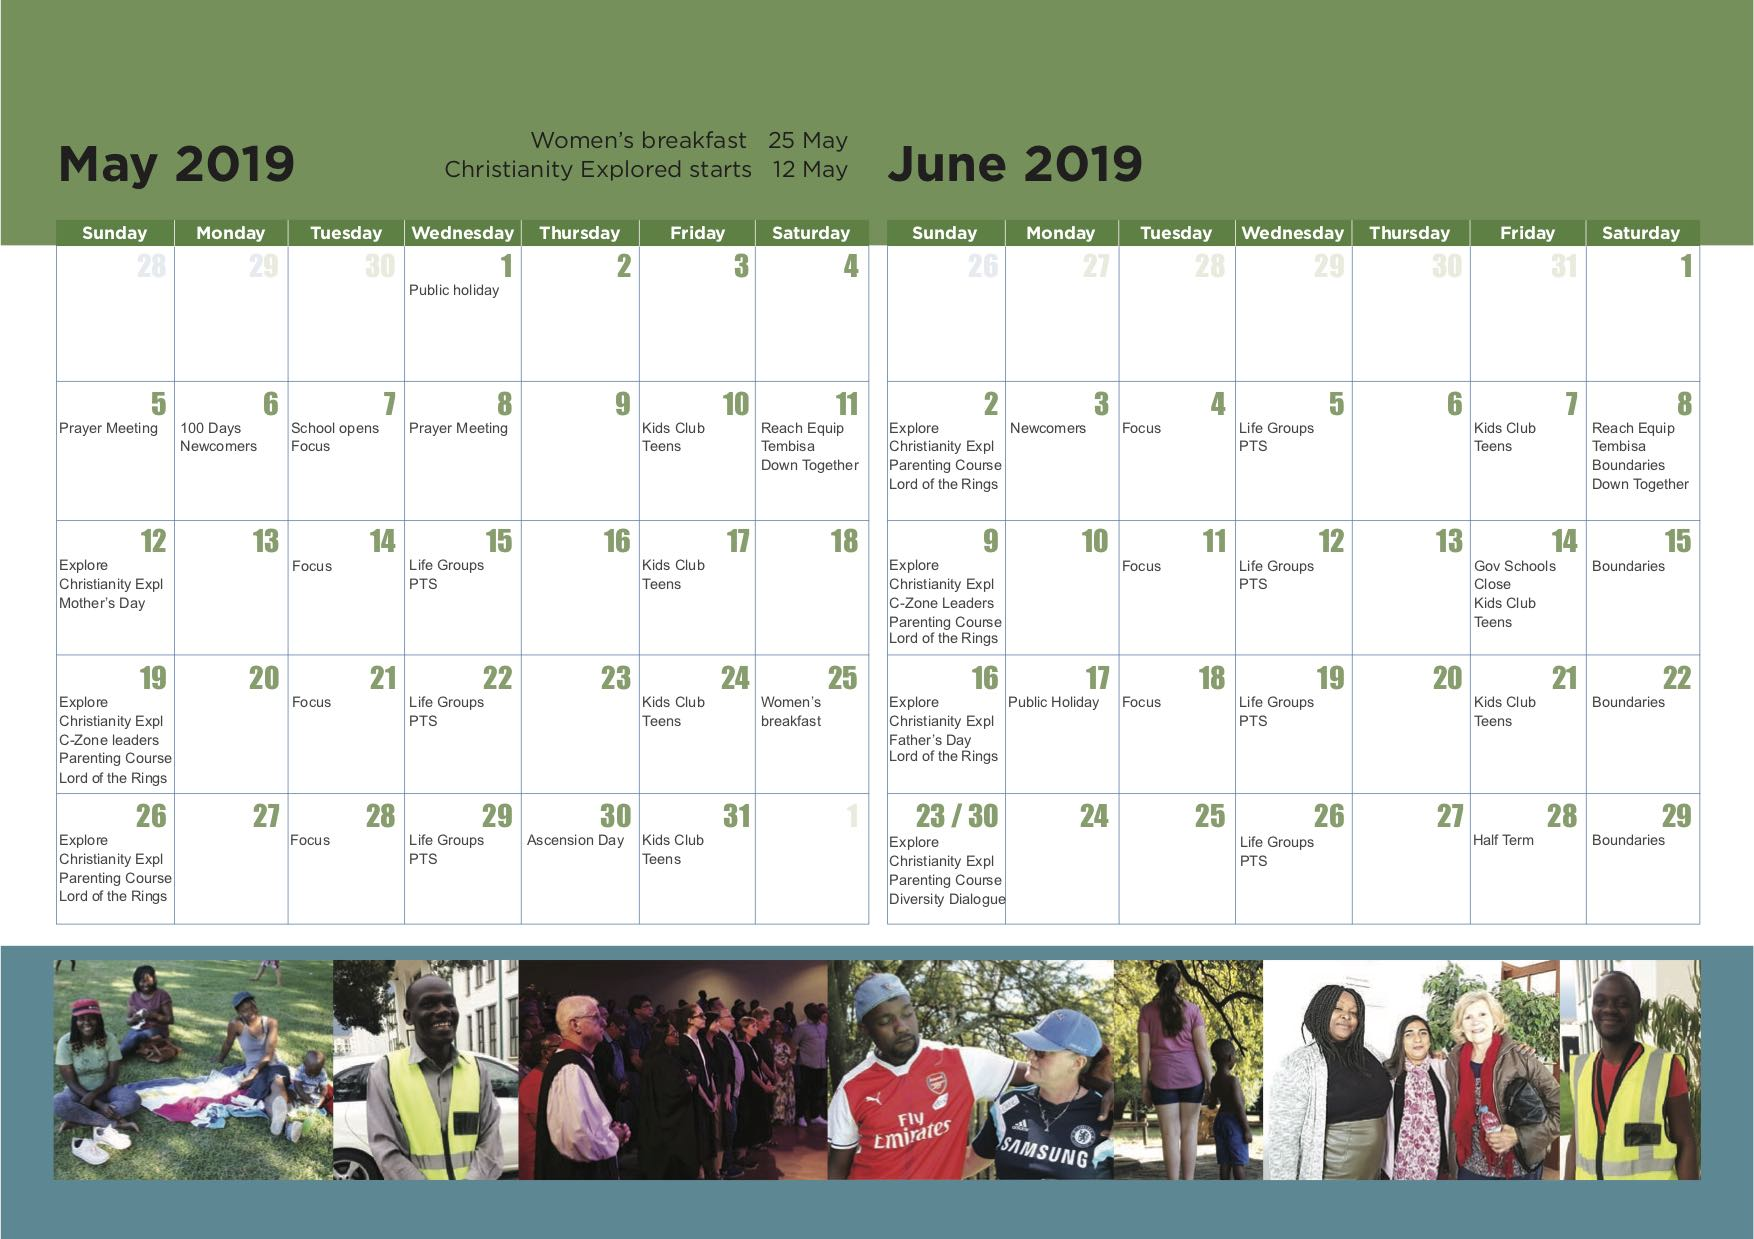 7. CCM calendar 2019 - May and June